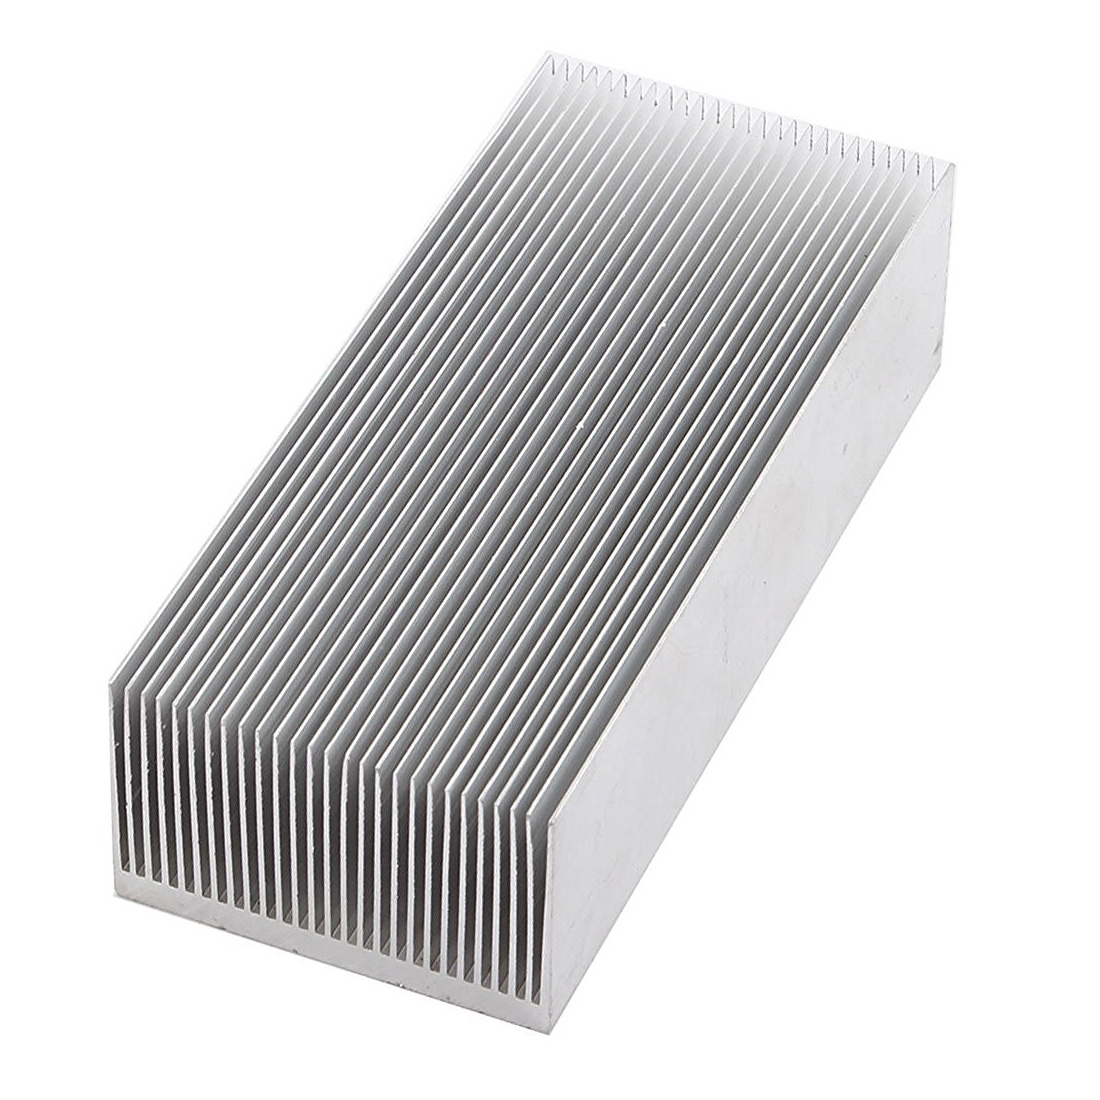 Aluminum Heat Radiator Heatsink Cooling Fin 150x69x37mm Silver Tone 200pcs lot 0 36kg heatsink 14 14 6 mm fin silver quality radiator